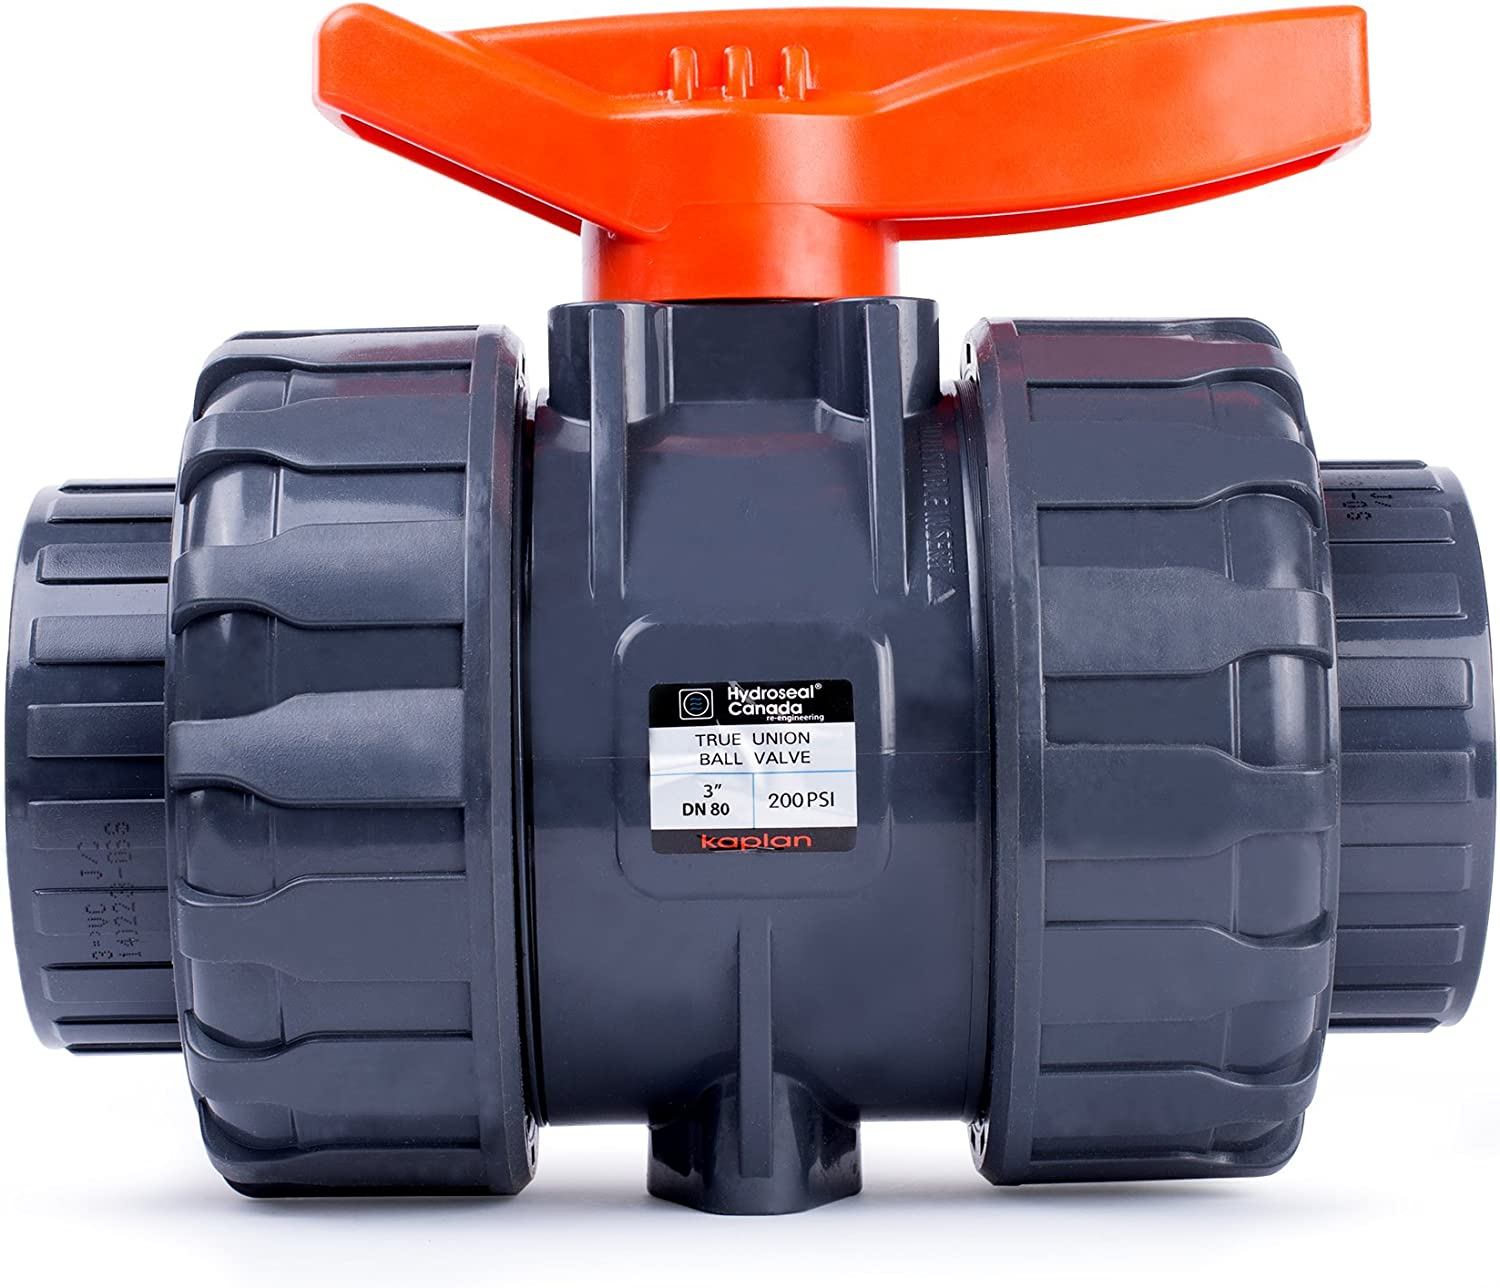 "HYDROSEAL Kaplan 3"" PVC True Union Ball Valve with Full Port, ASTM F1970, EPDM O-Rings and Reversible PTFE Seats, Rated at 200 PSI @73F, Gray, 3 inch Socket"